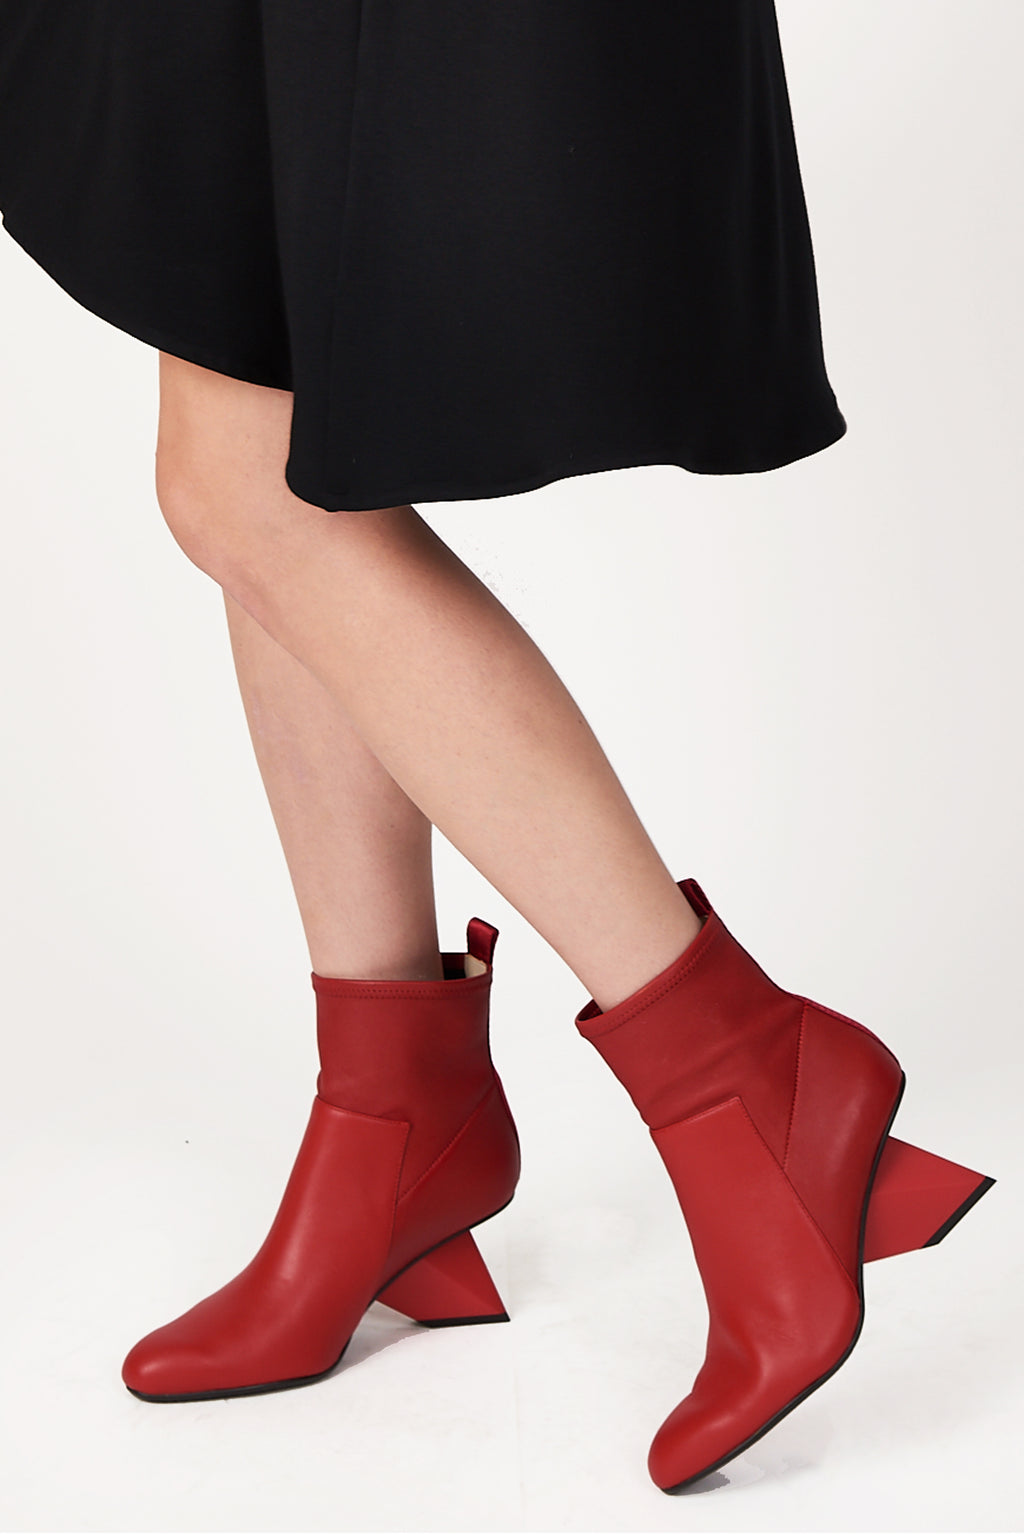 United Nude Rockit Pure Bootie in Deep Red